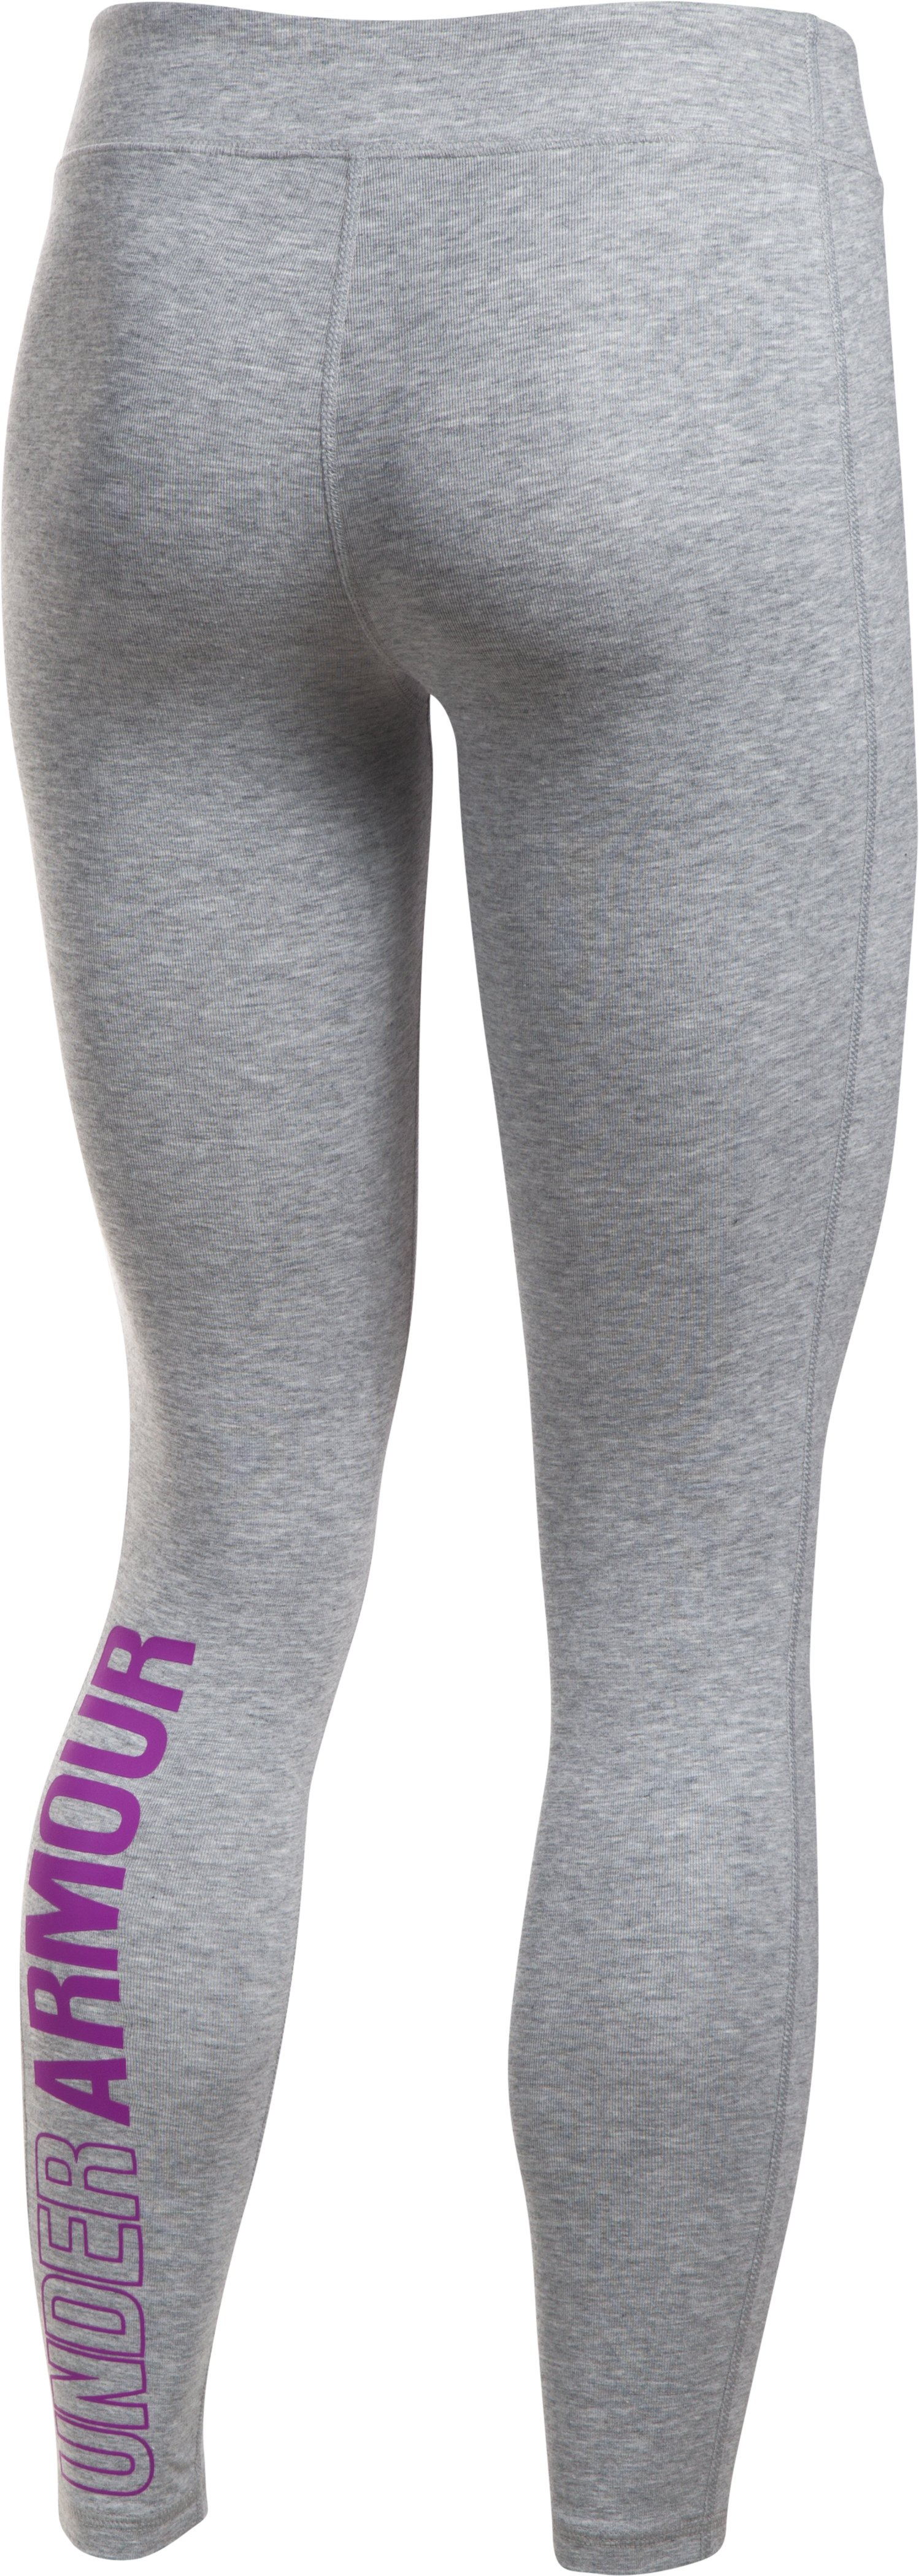 Girls' UA Favorite Knit Leggings, True Gray Heather,